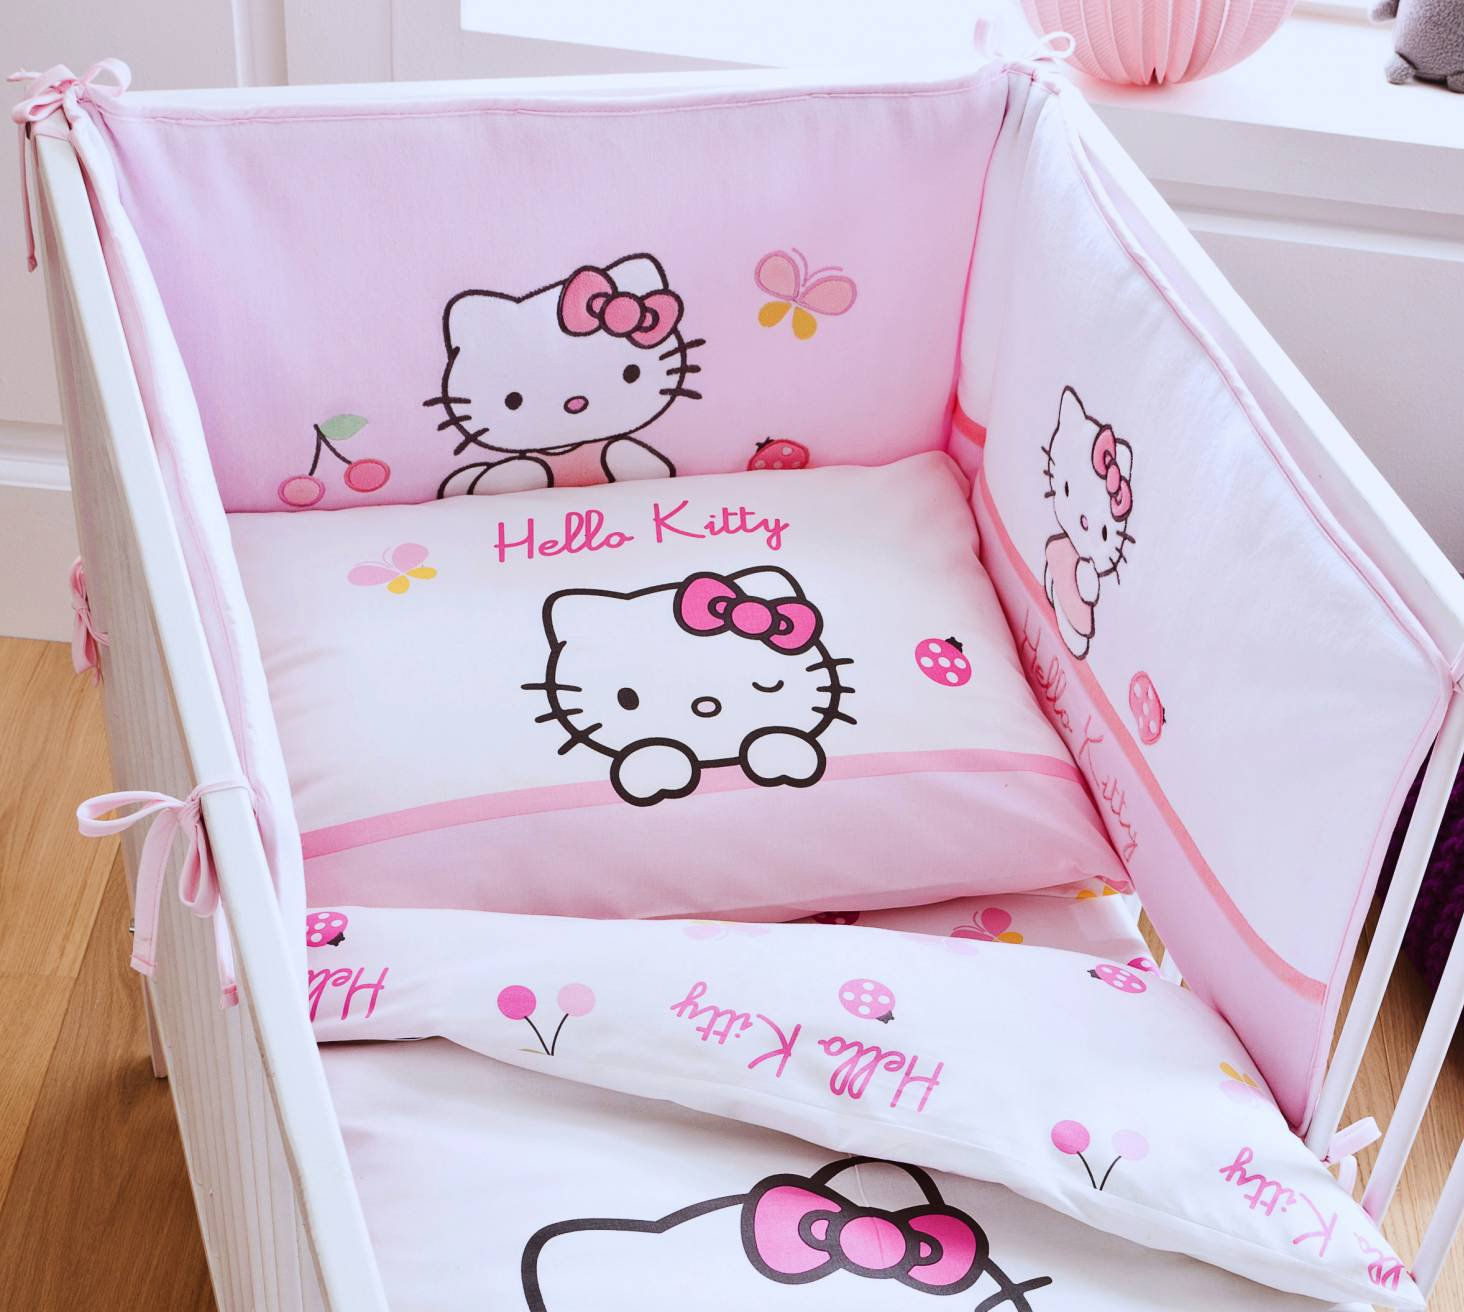 Cat gorie tour de lits du guide et comparateur d 39 achat - Conforama lit hello kitty ...